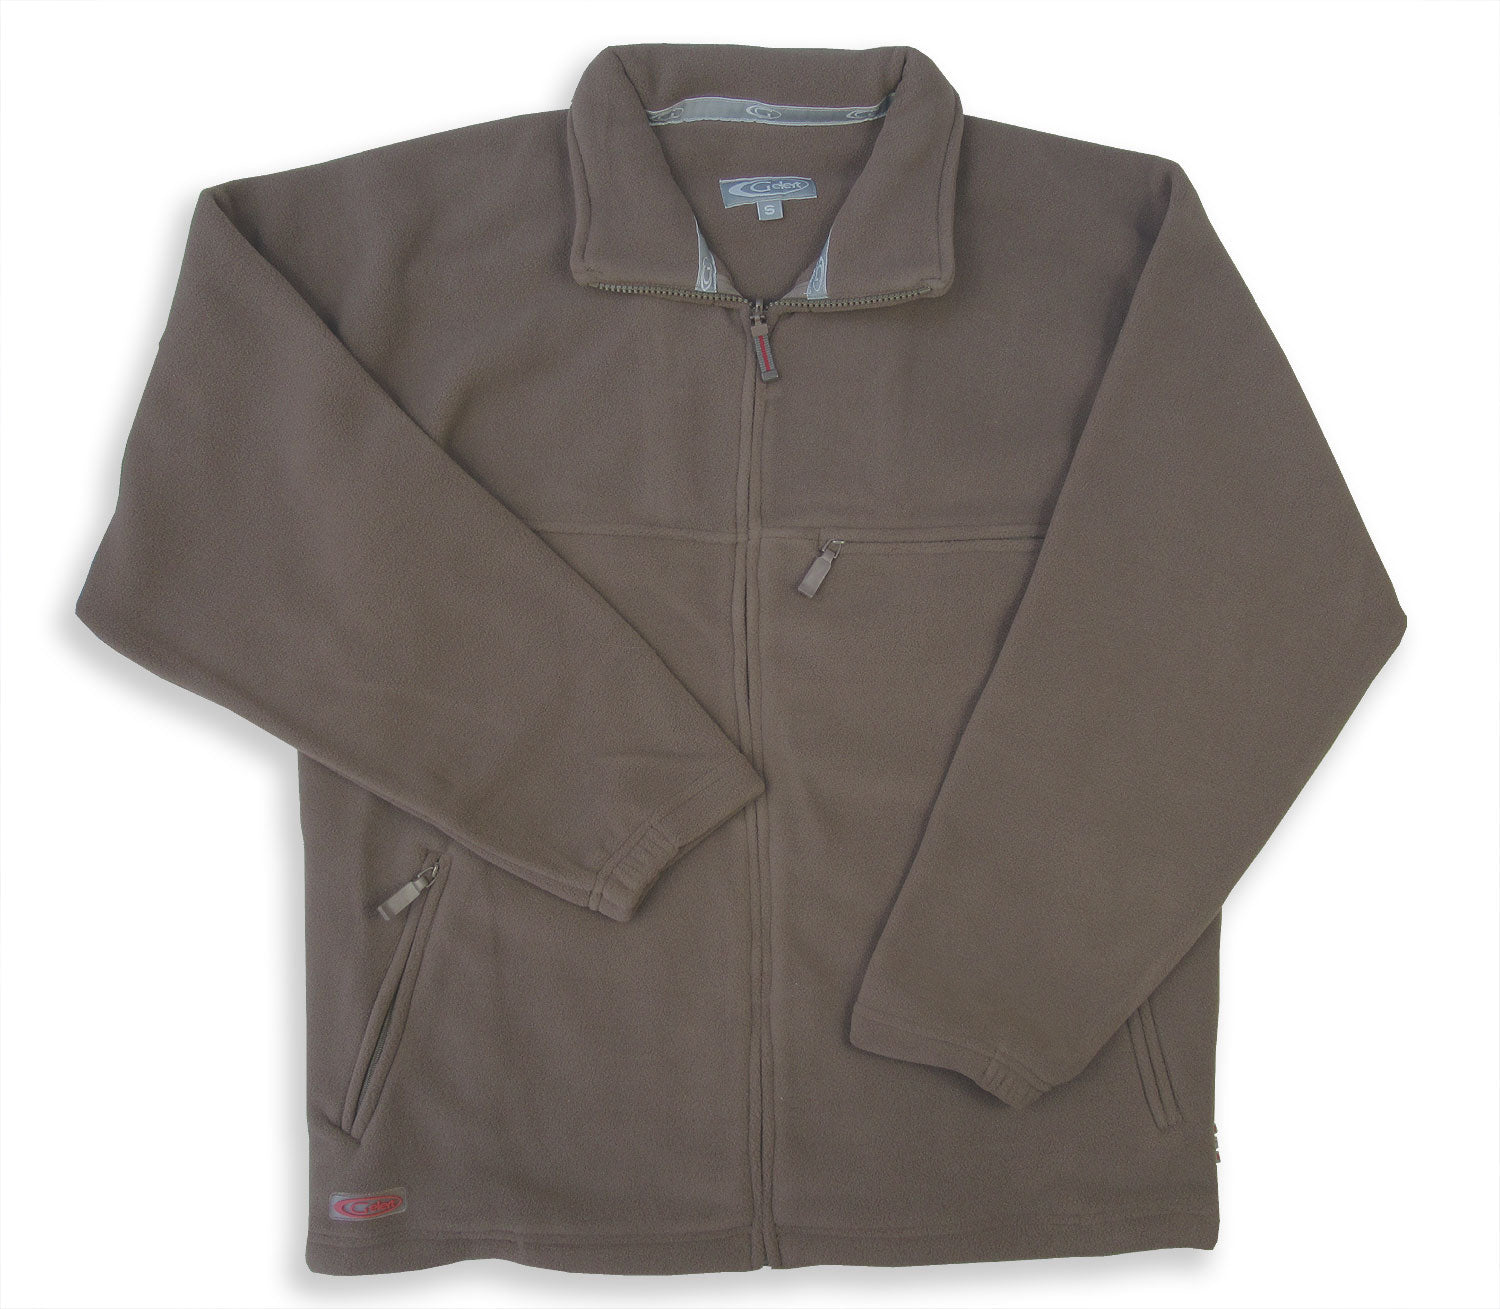 in taupe brown Buxton TLS fleece